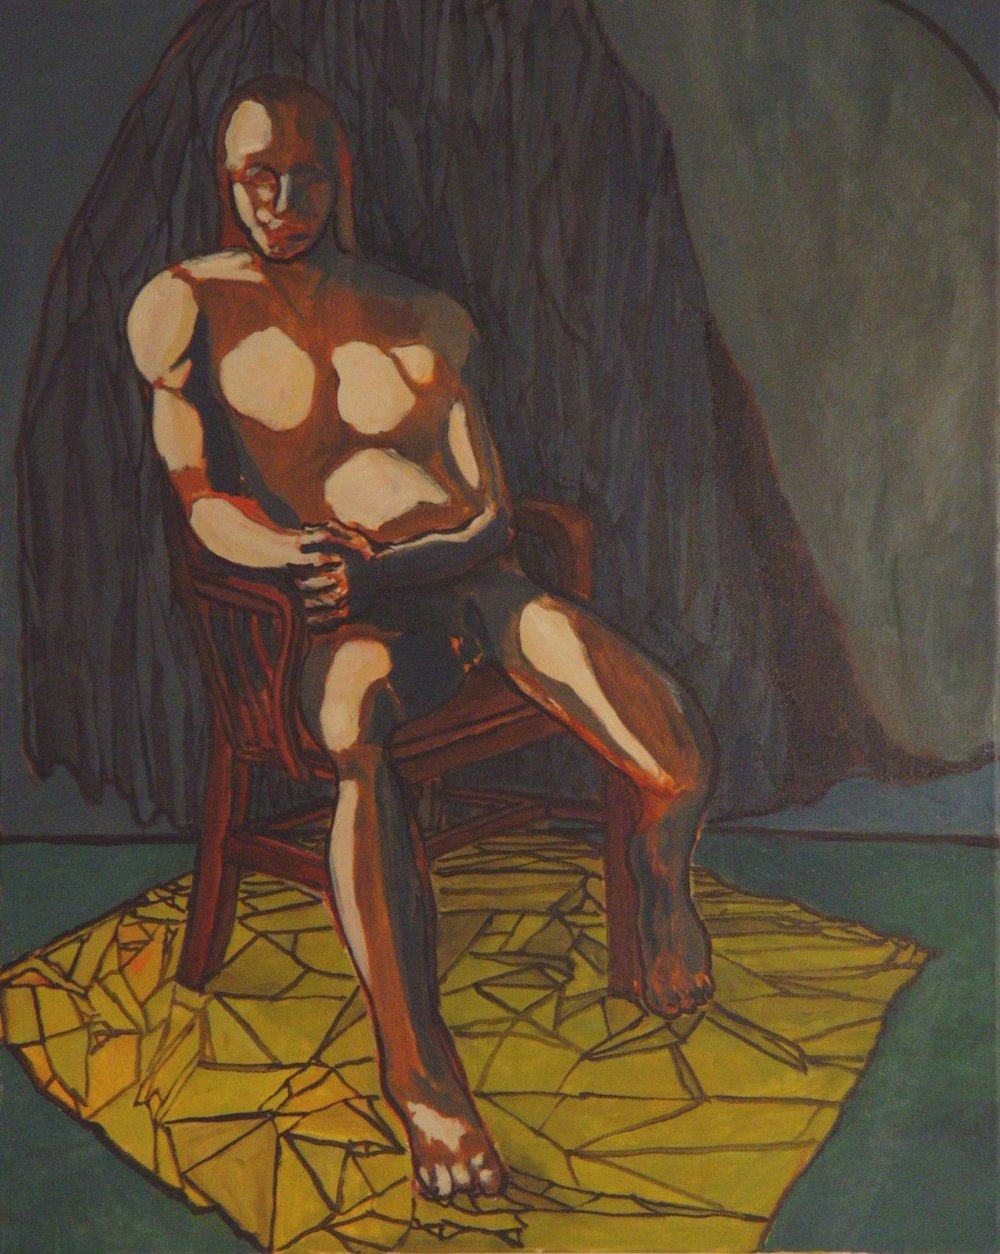 Nude Man Seated